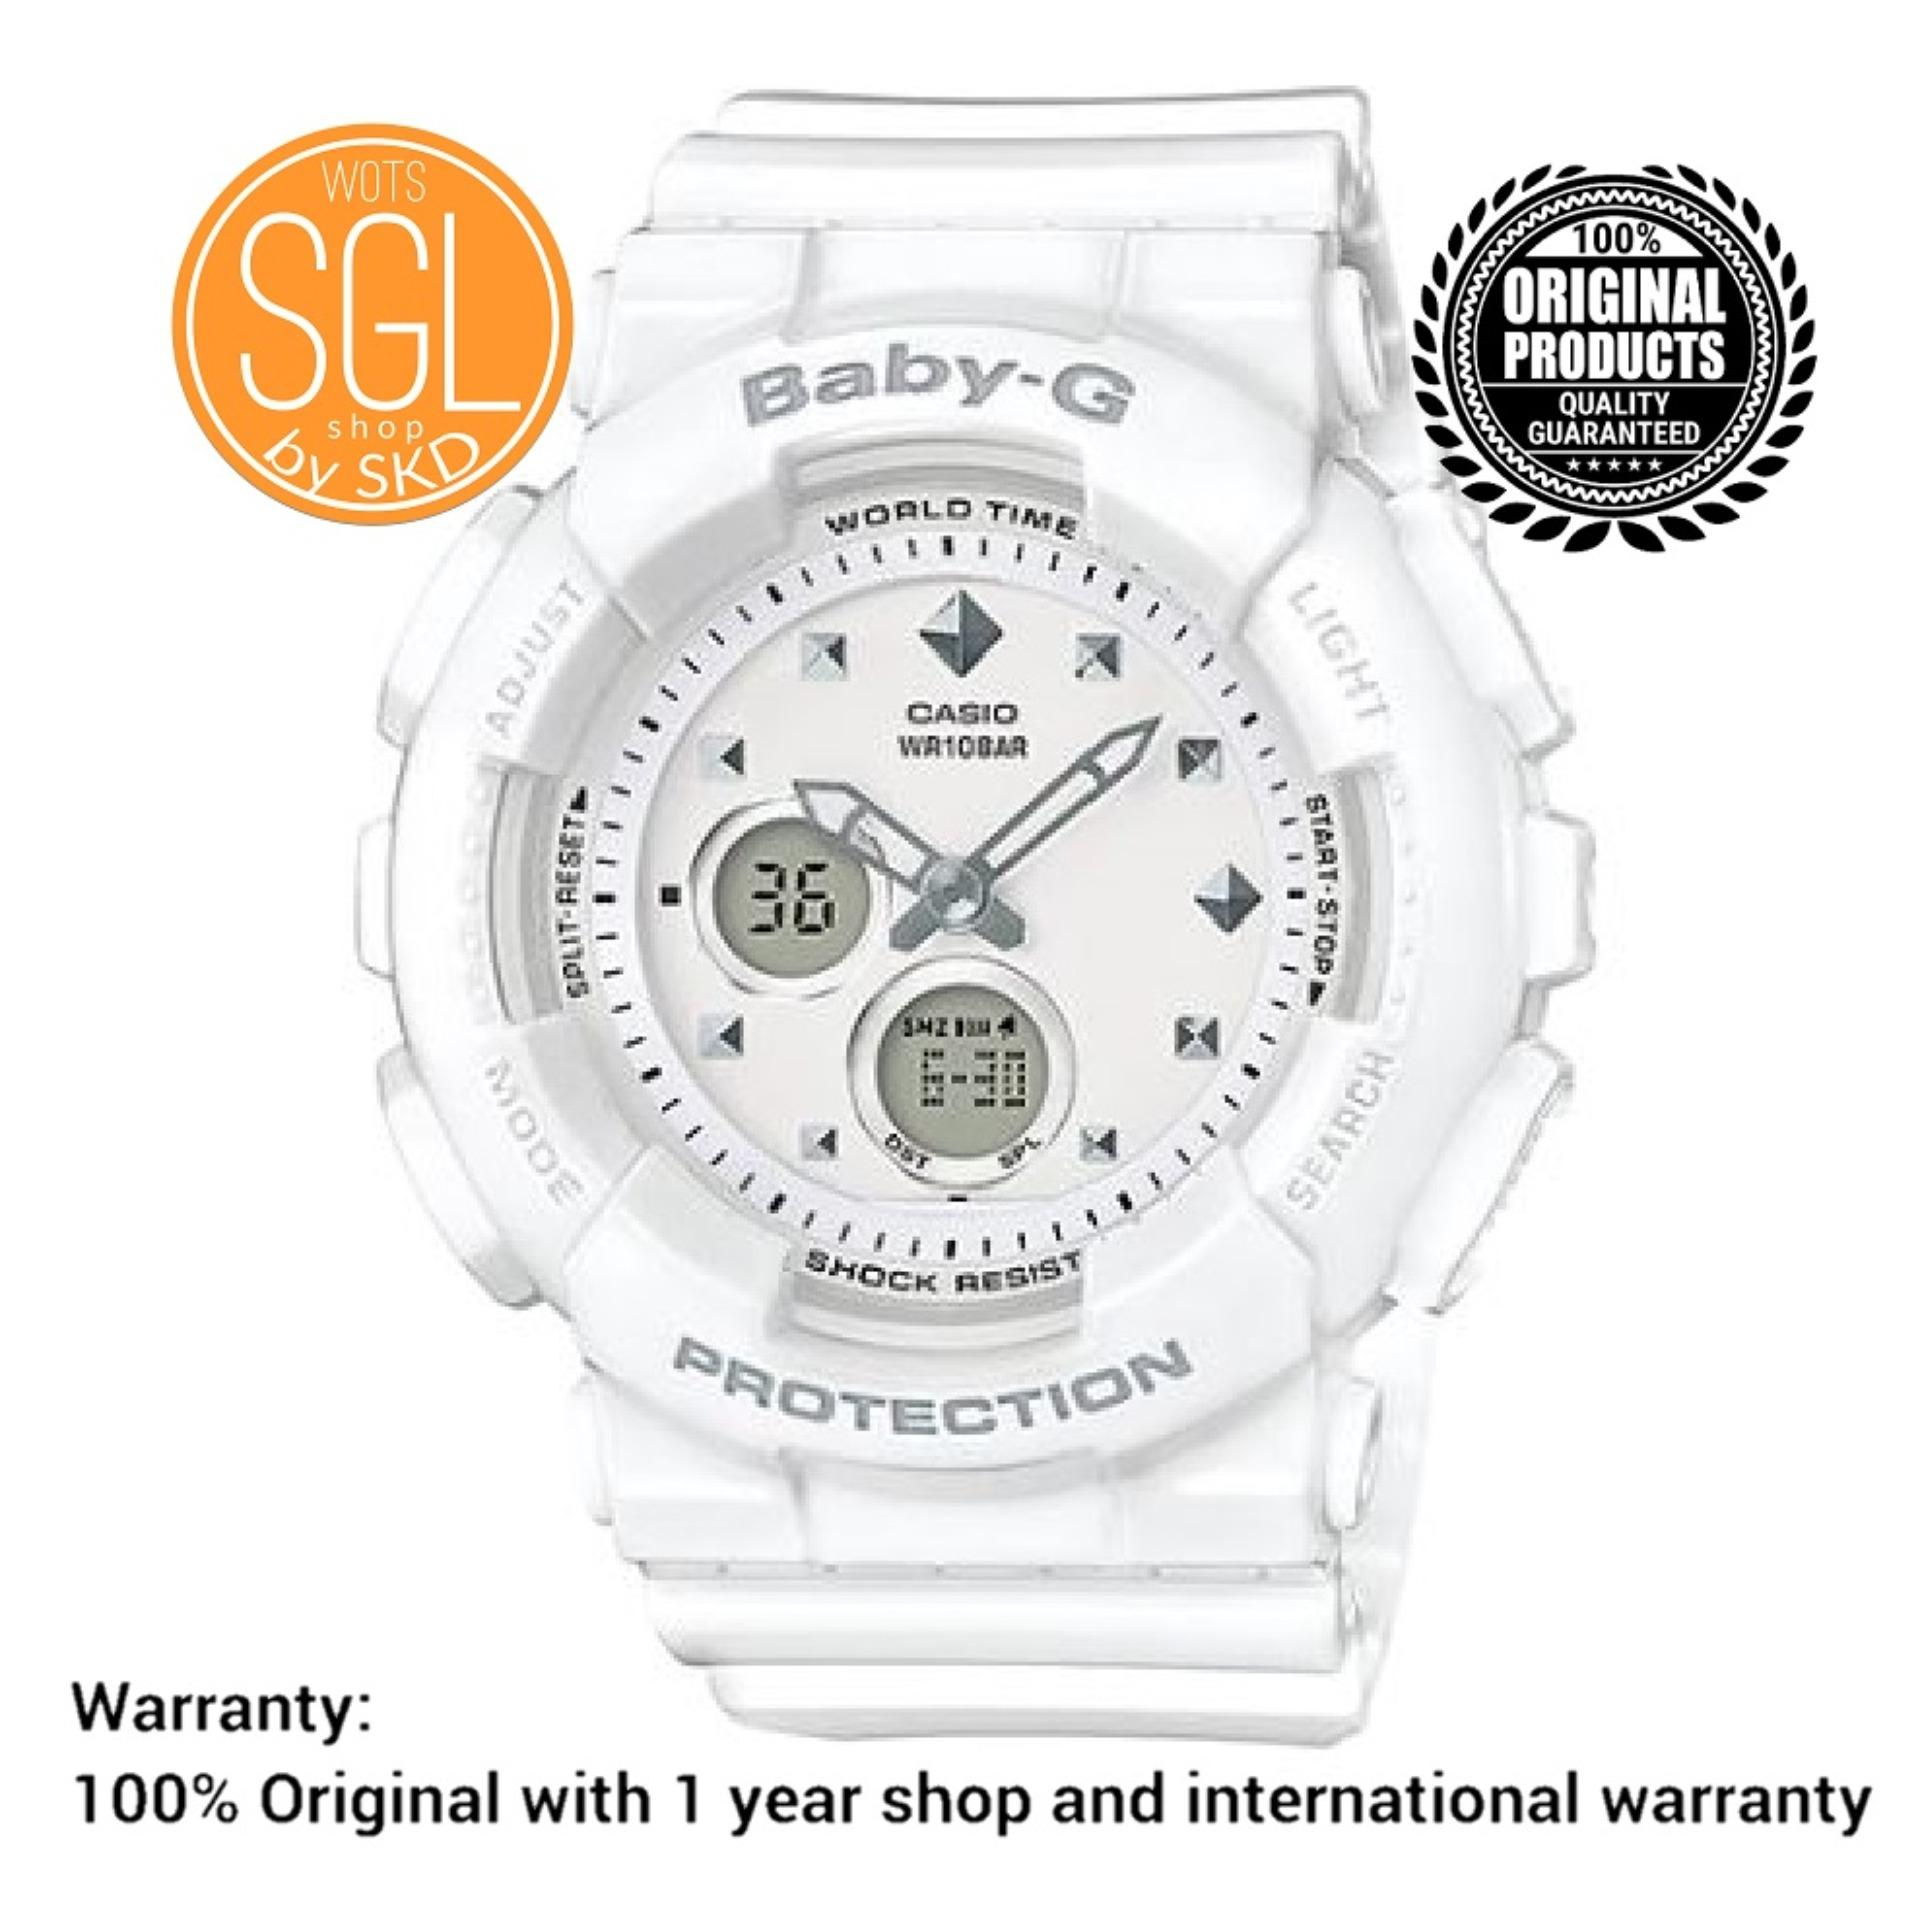 Casio Baby G Watches For Women Philippines Womens Ba 110tx 4a Original White With Studs Details Analog Watch Ba125 7 Sgl Wots Shop